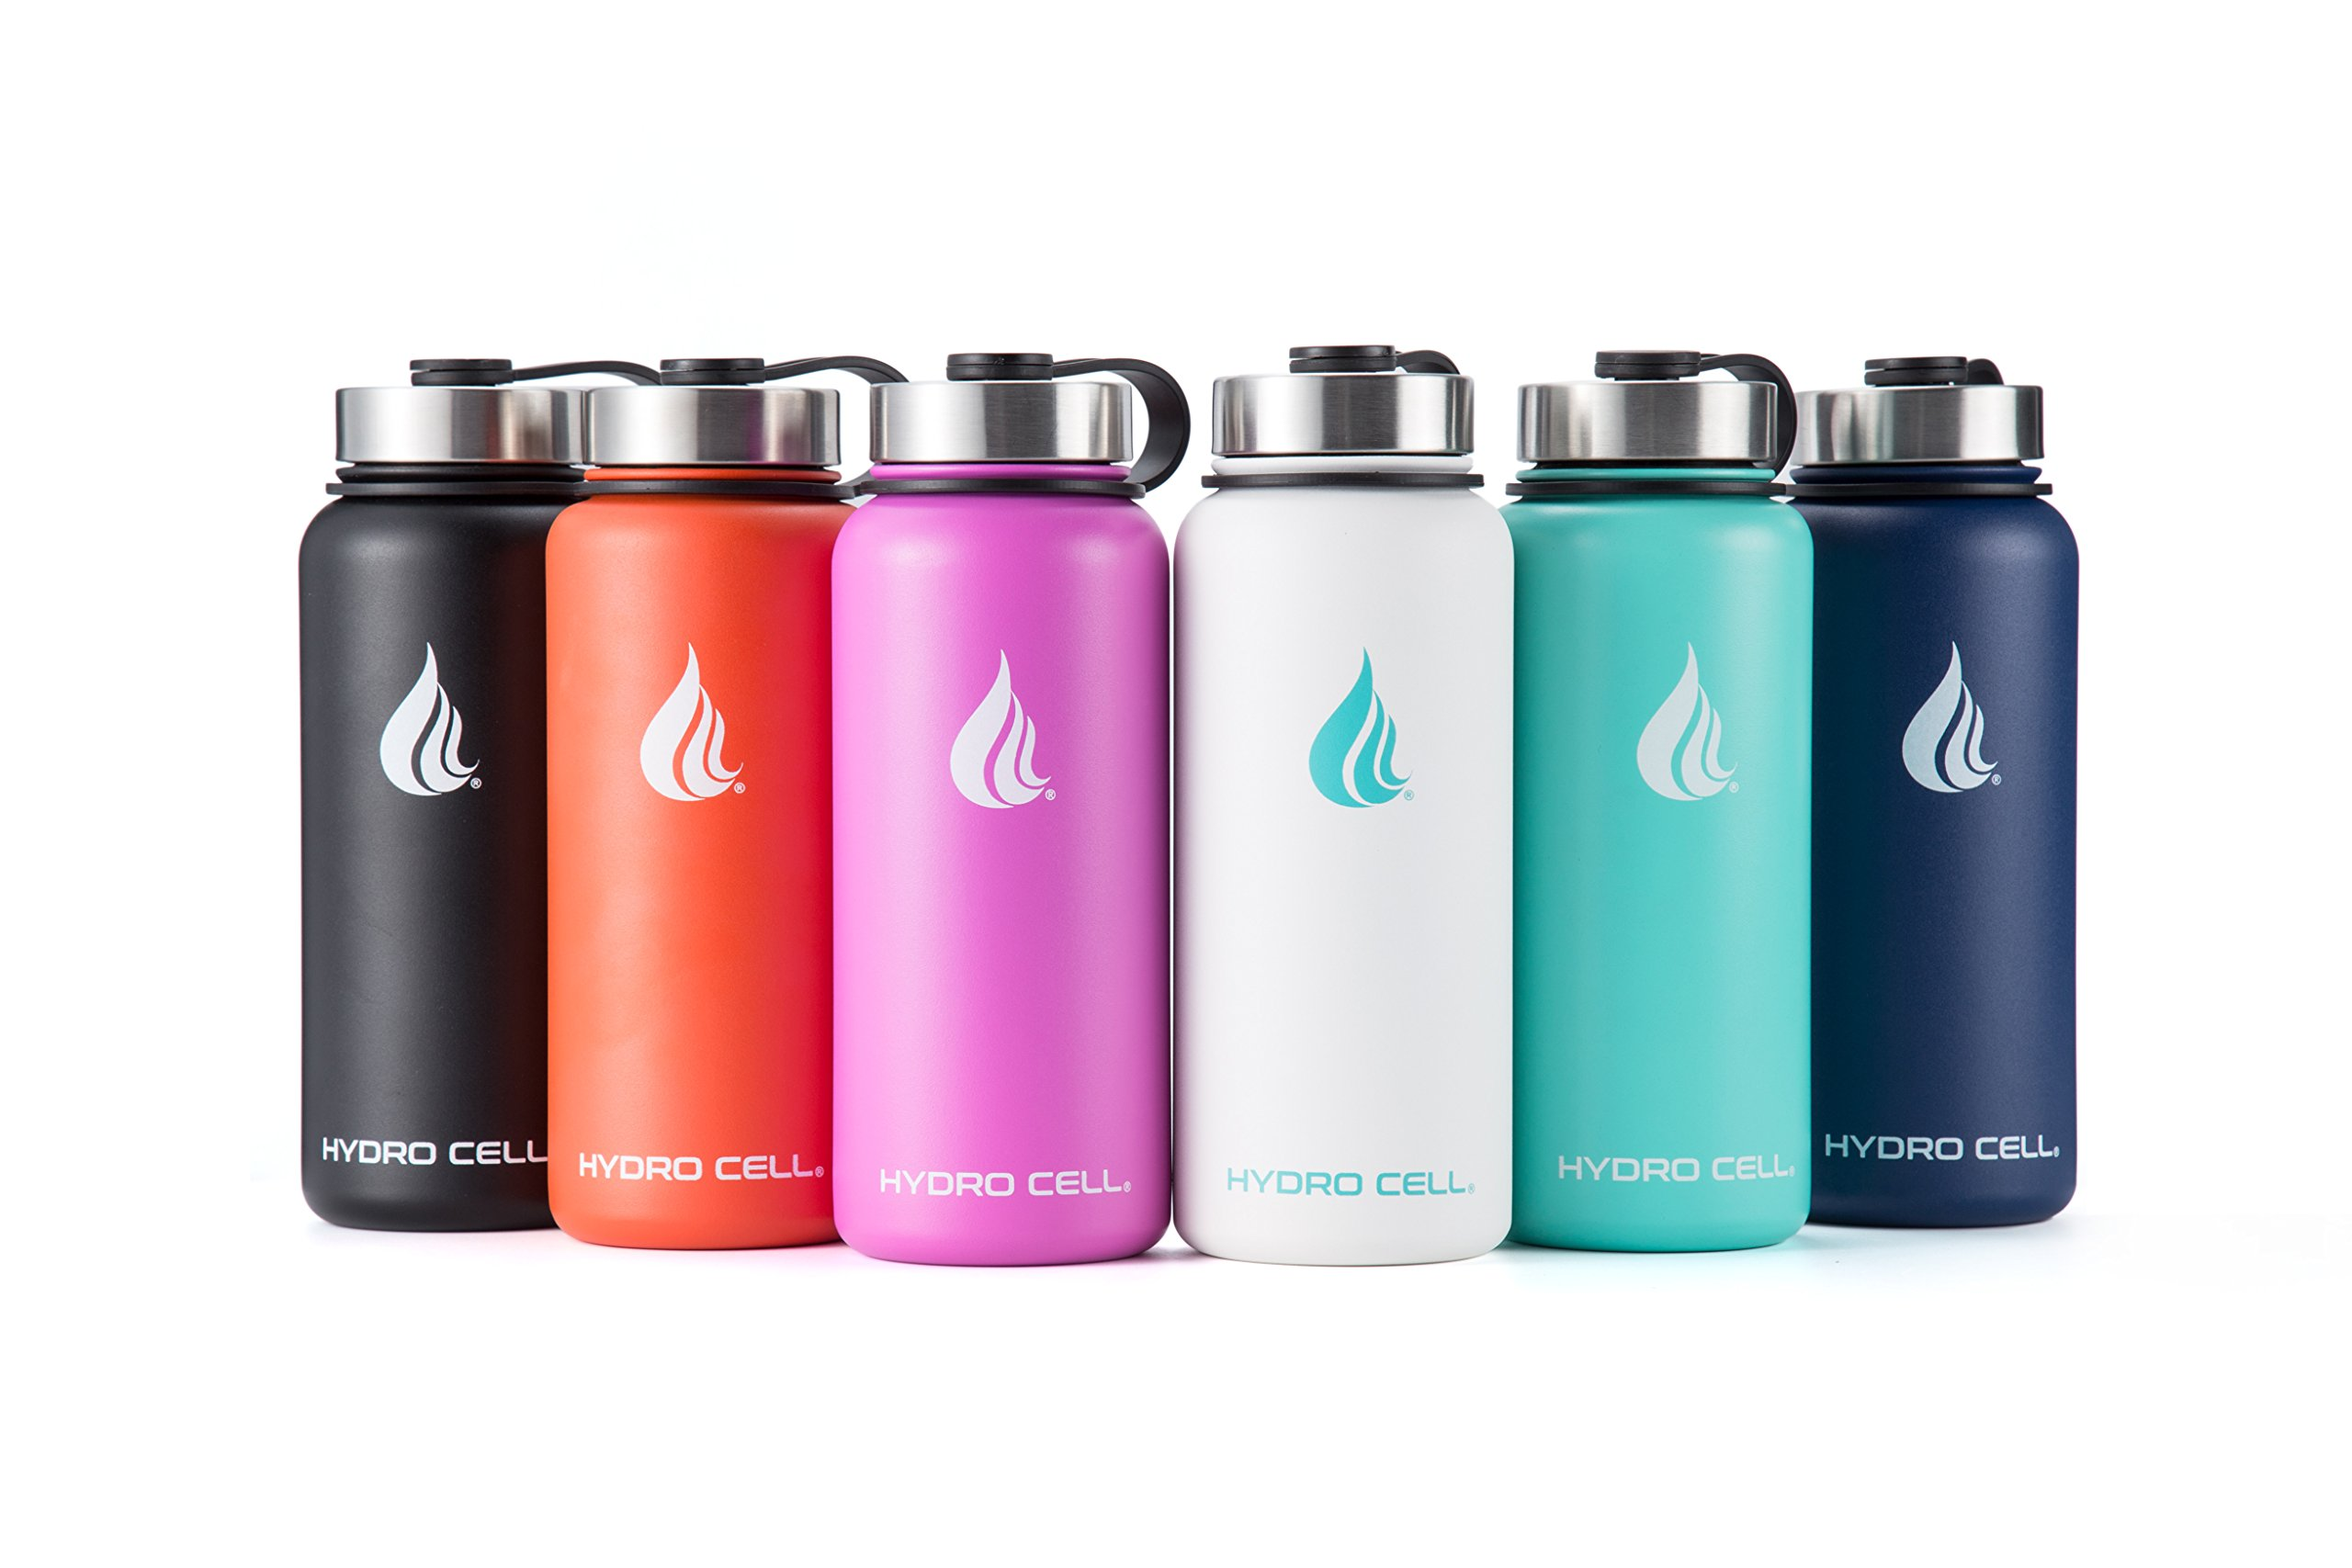 HYDRO CELL Stainless Steel Water Bottle with Straw & Wide Mouth Lids (32 oz or 22 oz) - Keeps Liquids Perfectly Hot or Cold with Double Wall Vacuum Insulated Sweat Proof Sport Design (Teal 32 oz)